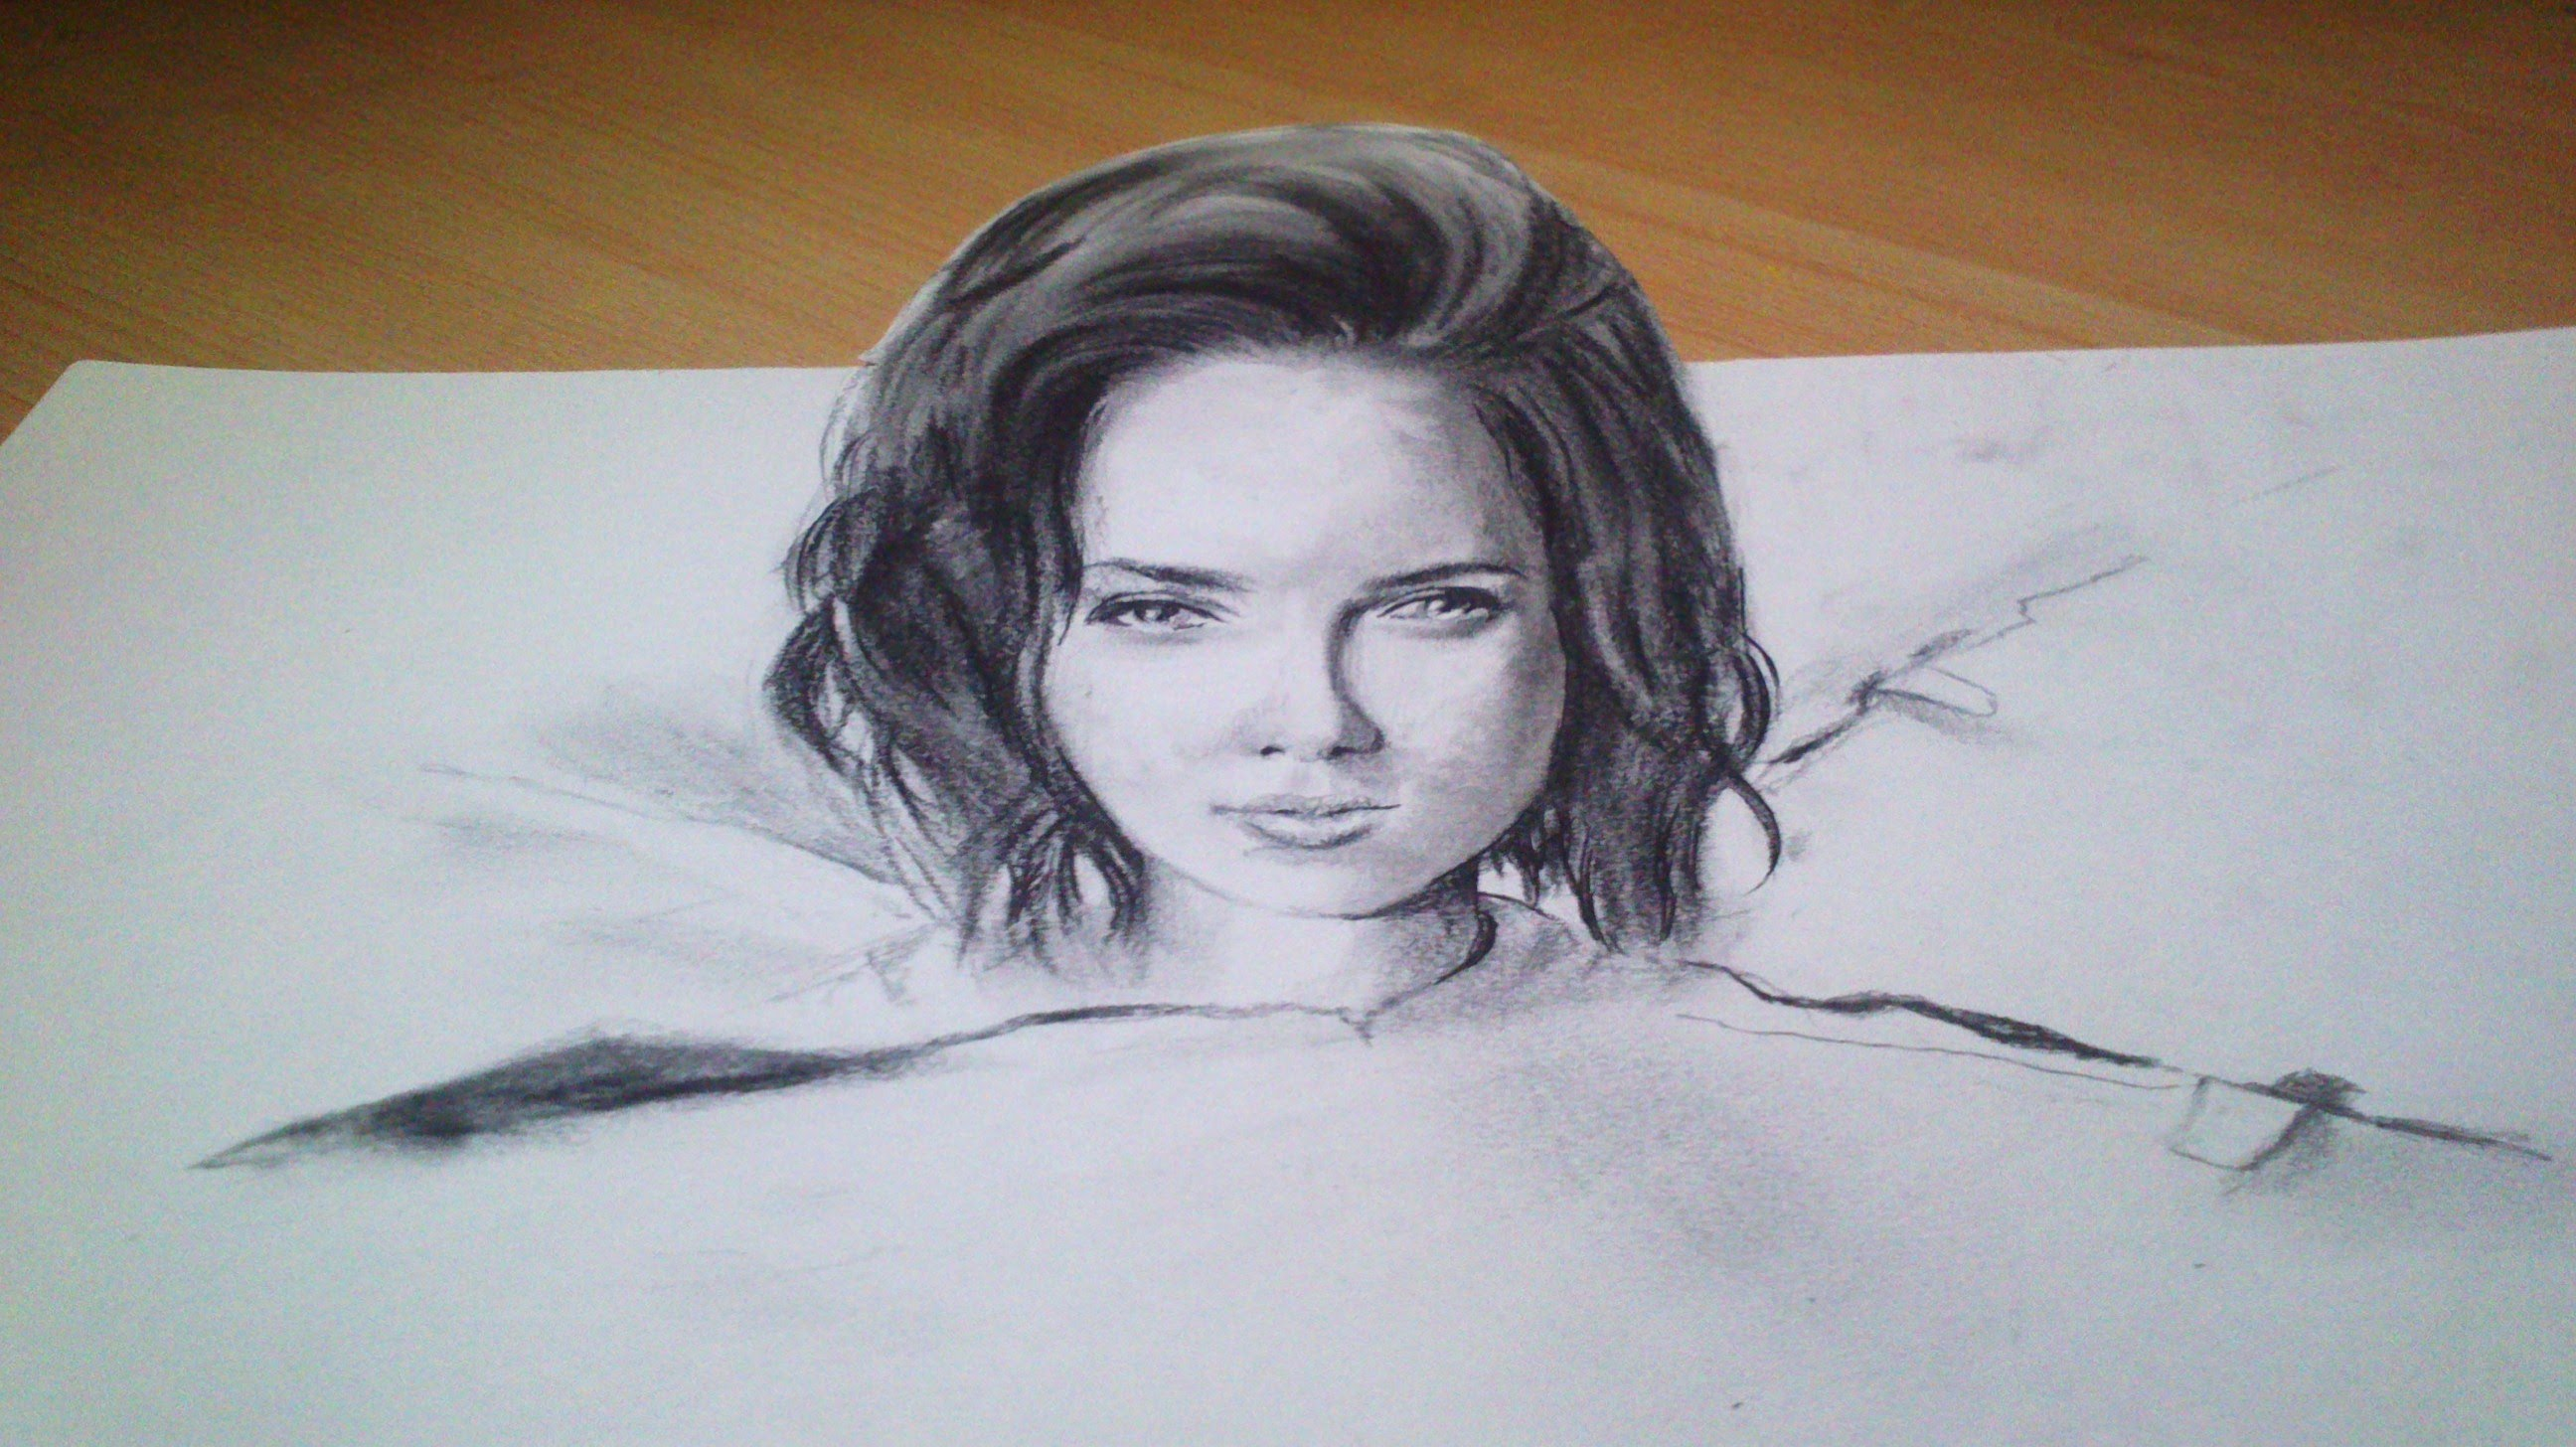 Drawn paper anamorphic illusion Face 3D Illusion Drawing 3D